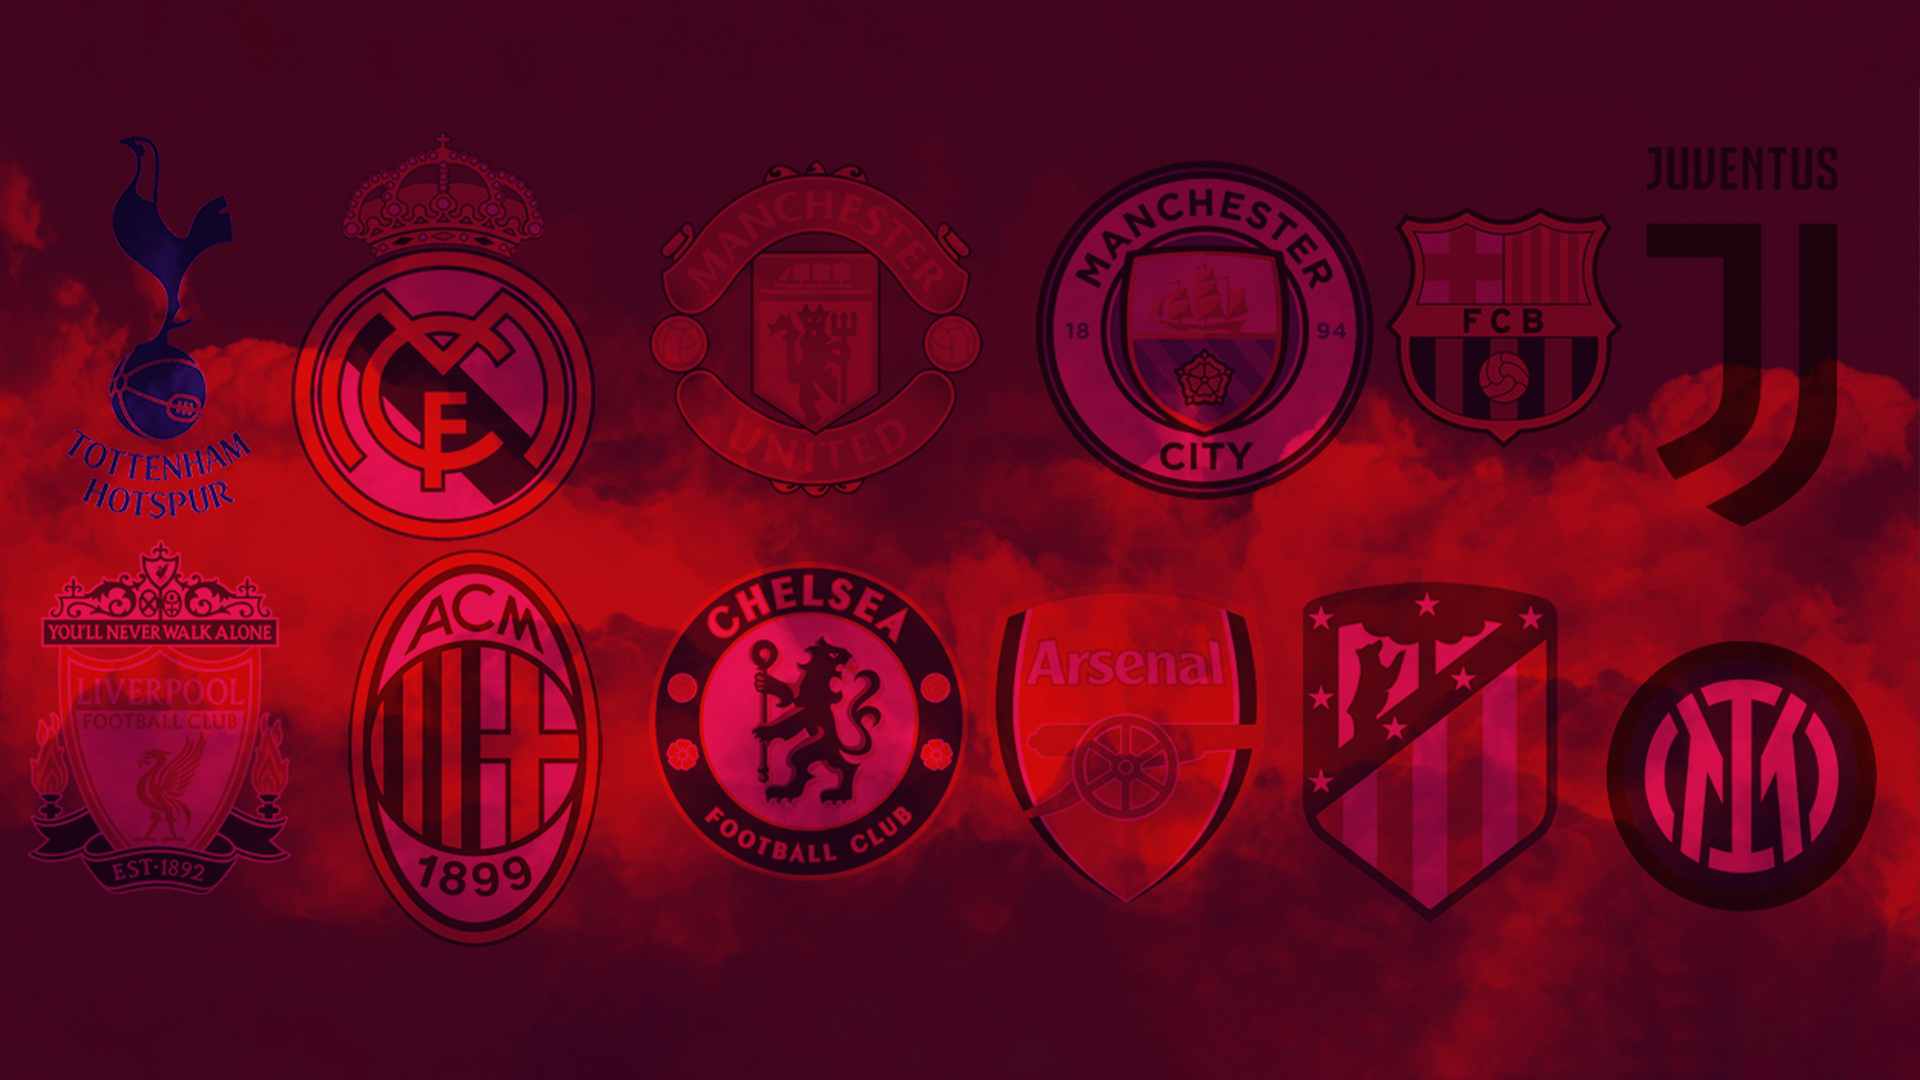 A various selection of Football crests displayed over a red cloud. The various clubs are those who were planning on joining The Super League, these being: Tottenham Hotspur, Real Madrid, Manchester United, Manchester City, Barcelona, Juventus, Liverpool, AC Milan, Chelsea, Arsenal, Athletico Madrid and Inter Milan.